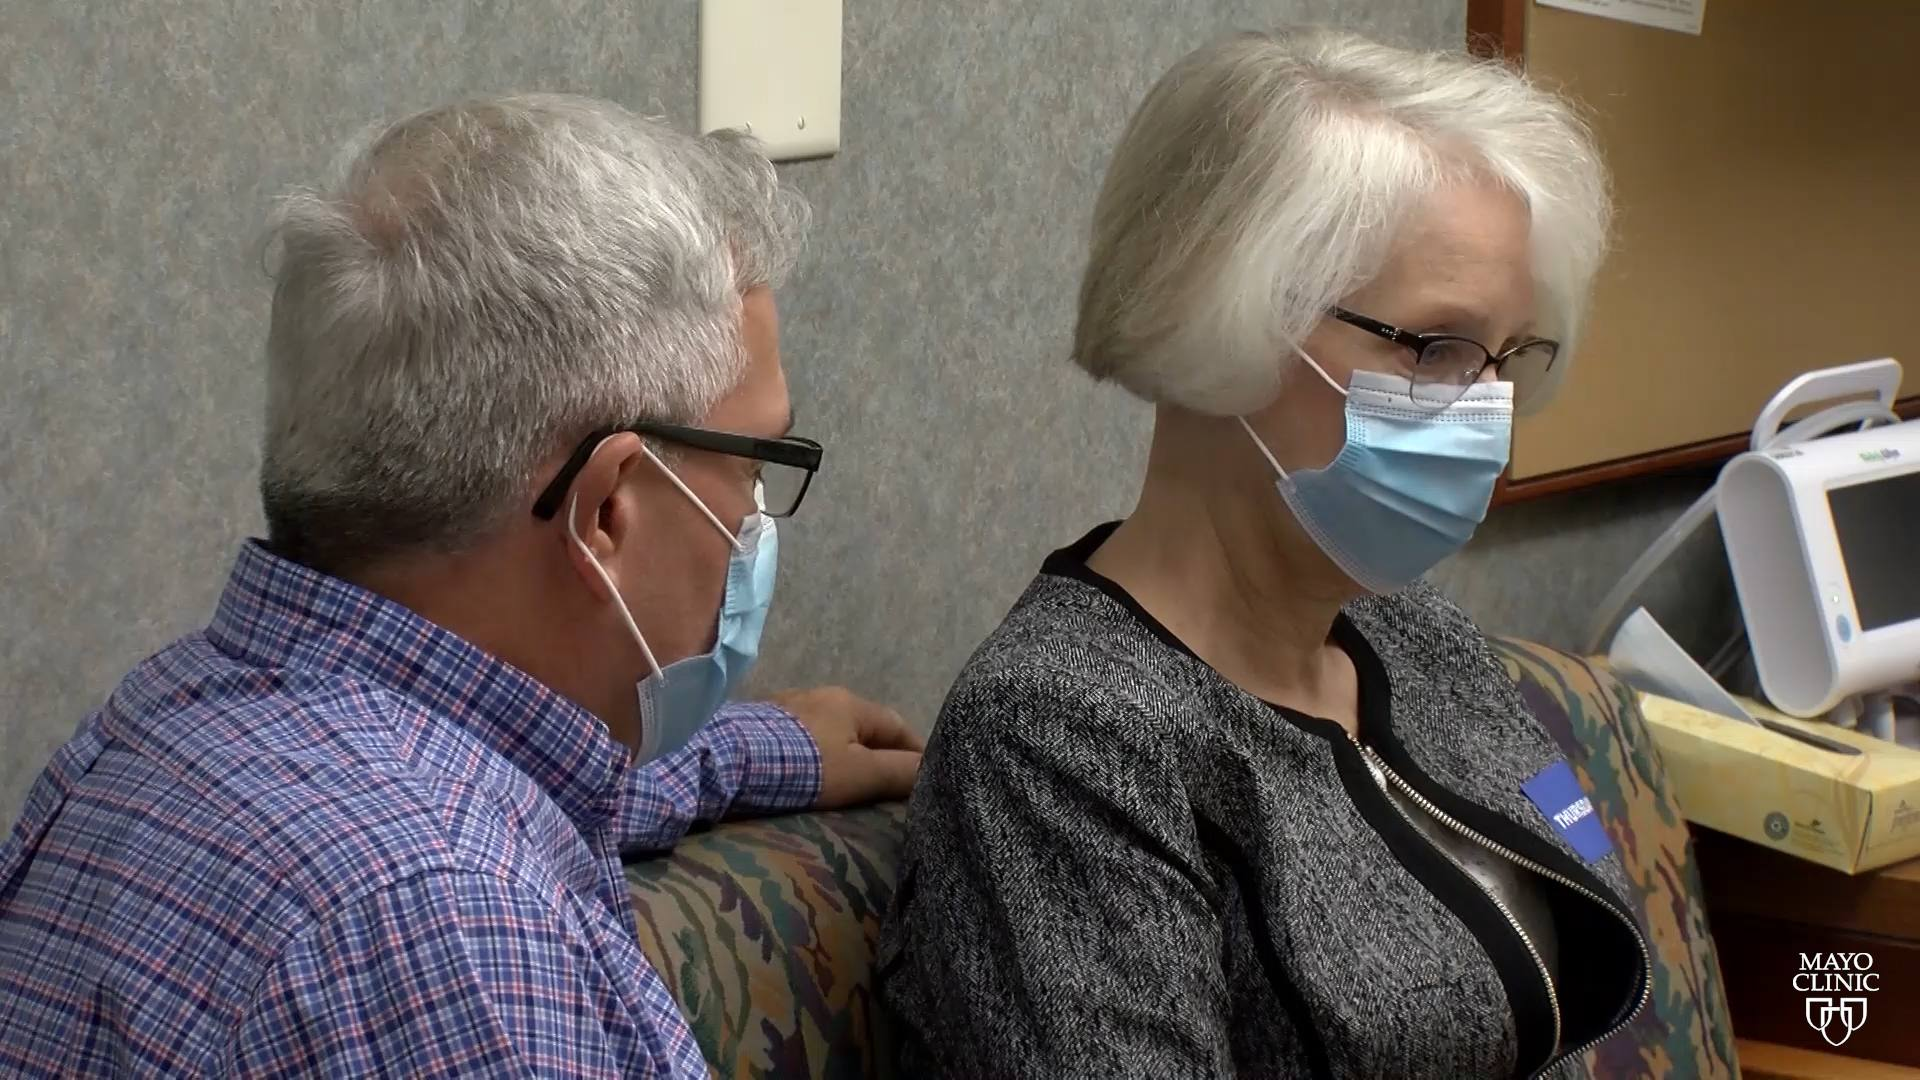 a middle aged woman with gray hair and eye glasses, wearing a mask, looking sad and sitting a physician's office